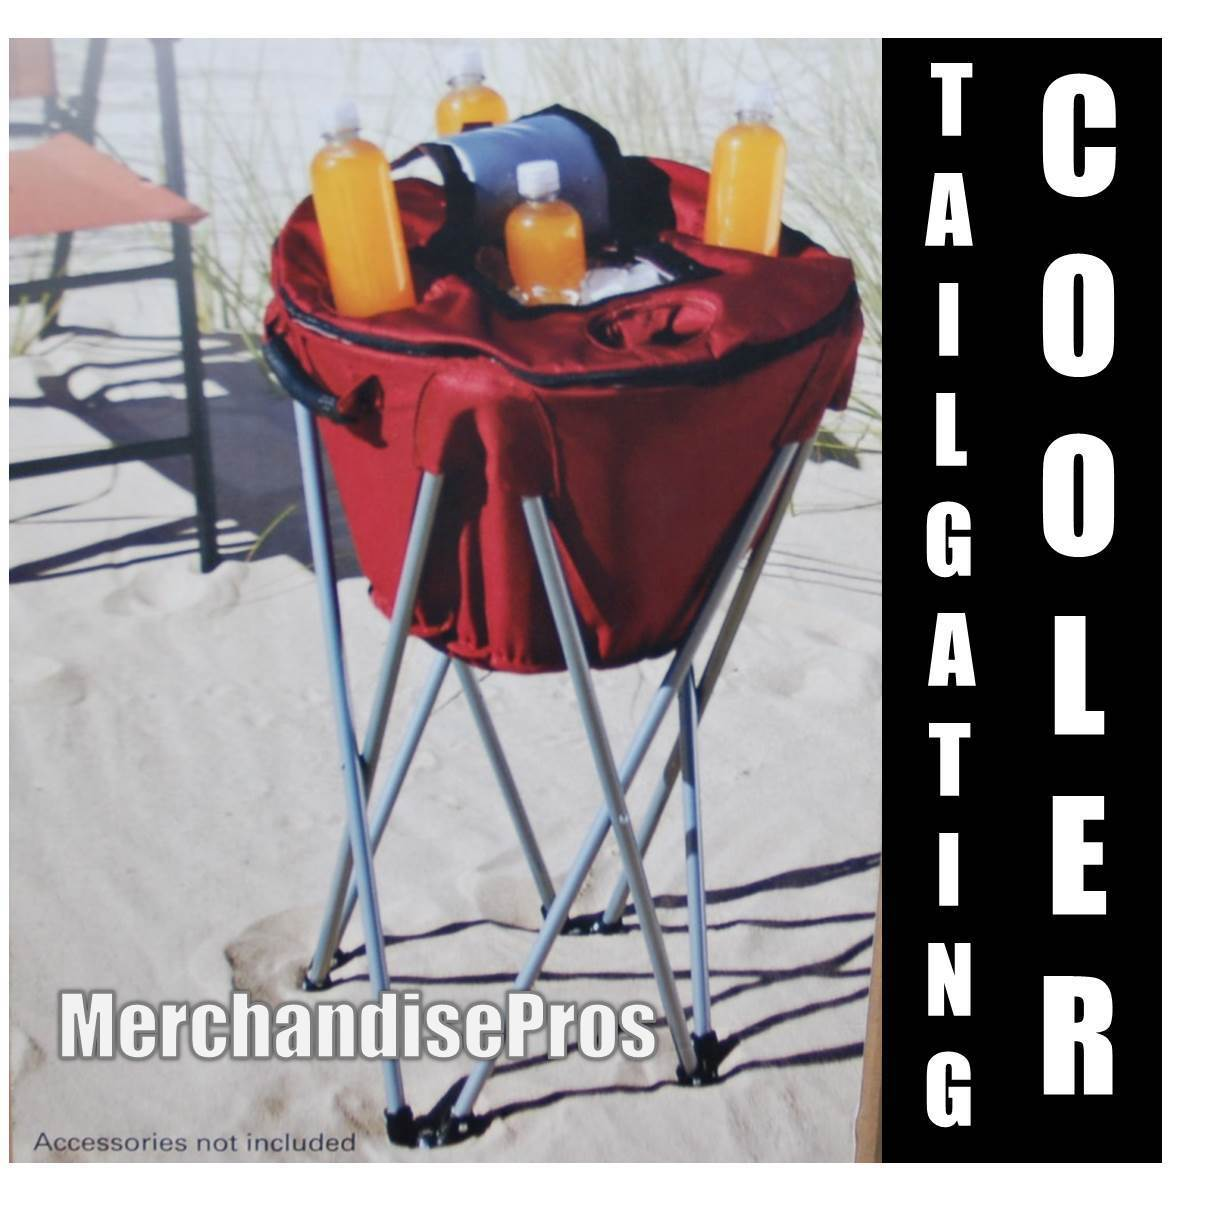 INSULATED 48 CAN COLLAPSIBLE TAILGAITING TAILGAITING TAILGAITING PORTABLE PARTY COOLER & CARRY BAG NEW 9f2b31